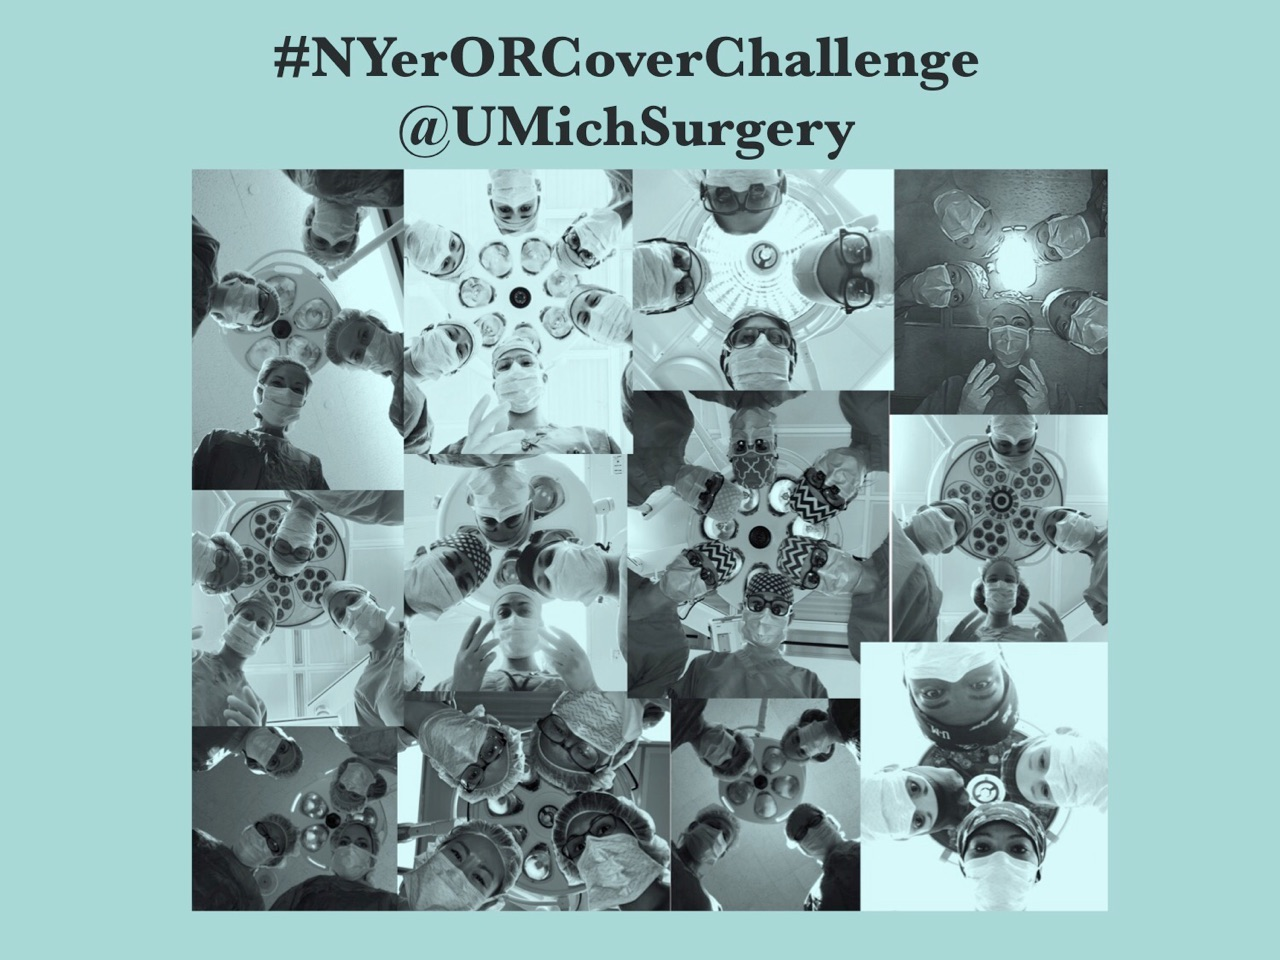 Collage of women surgeons re-creating the New Yorker cover #NYerORCoverChallenge @UMichSurgery